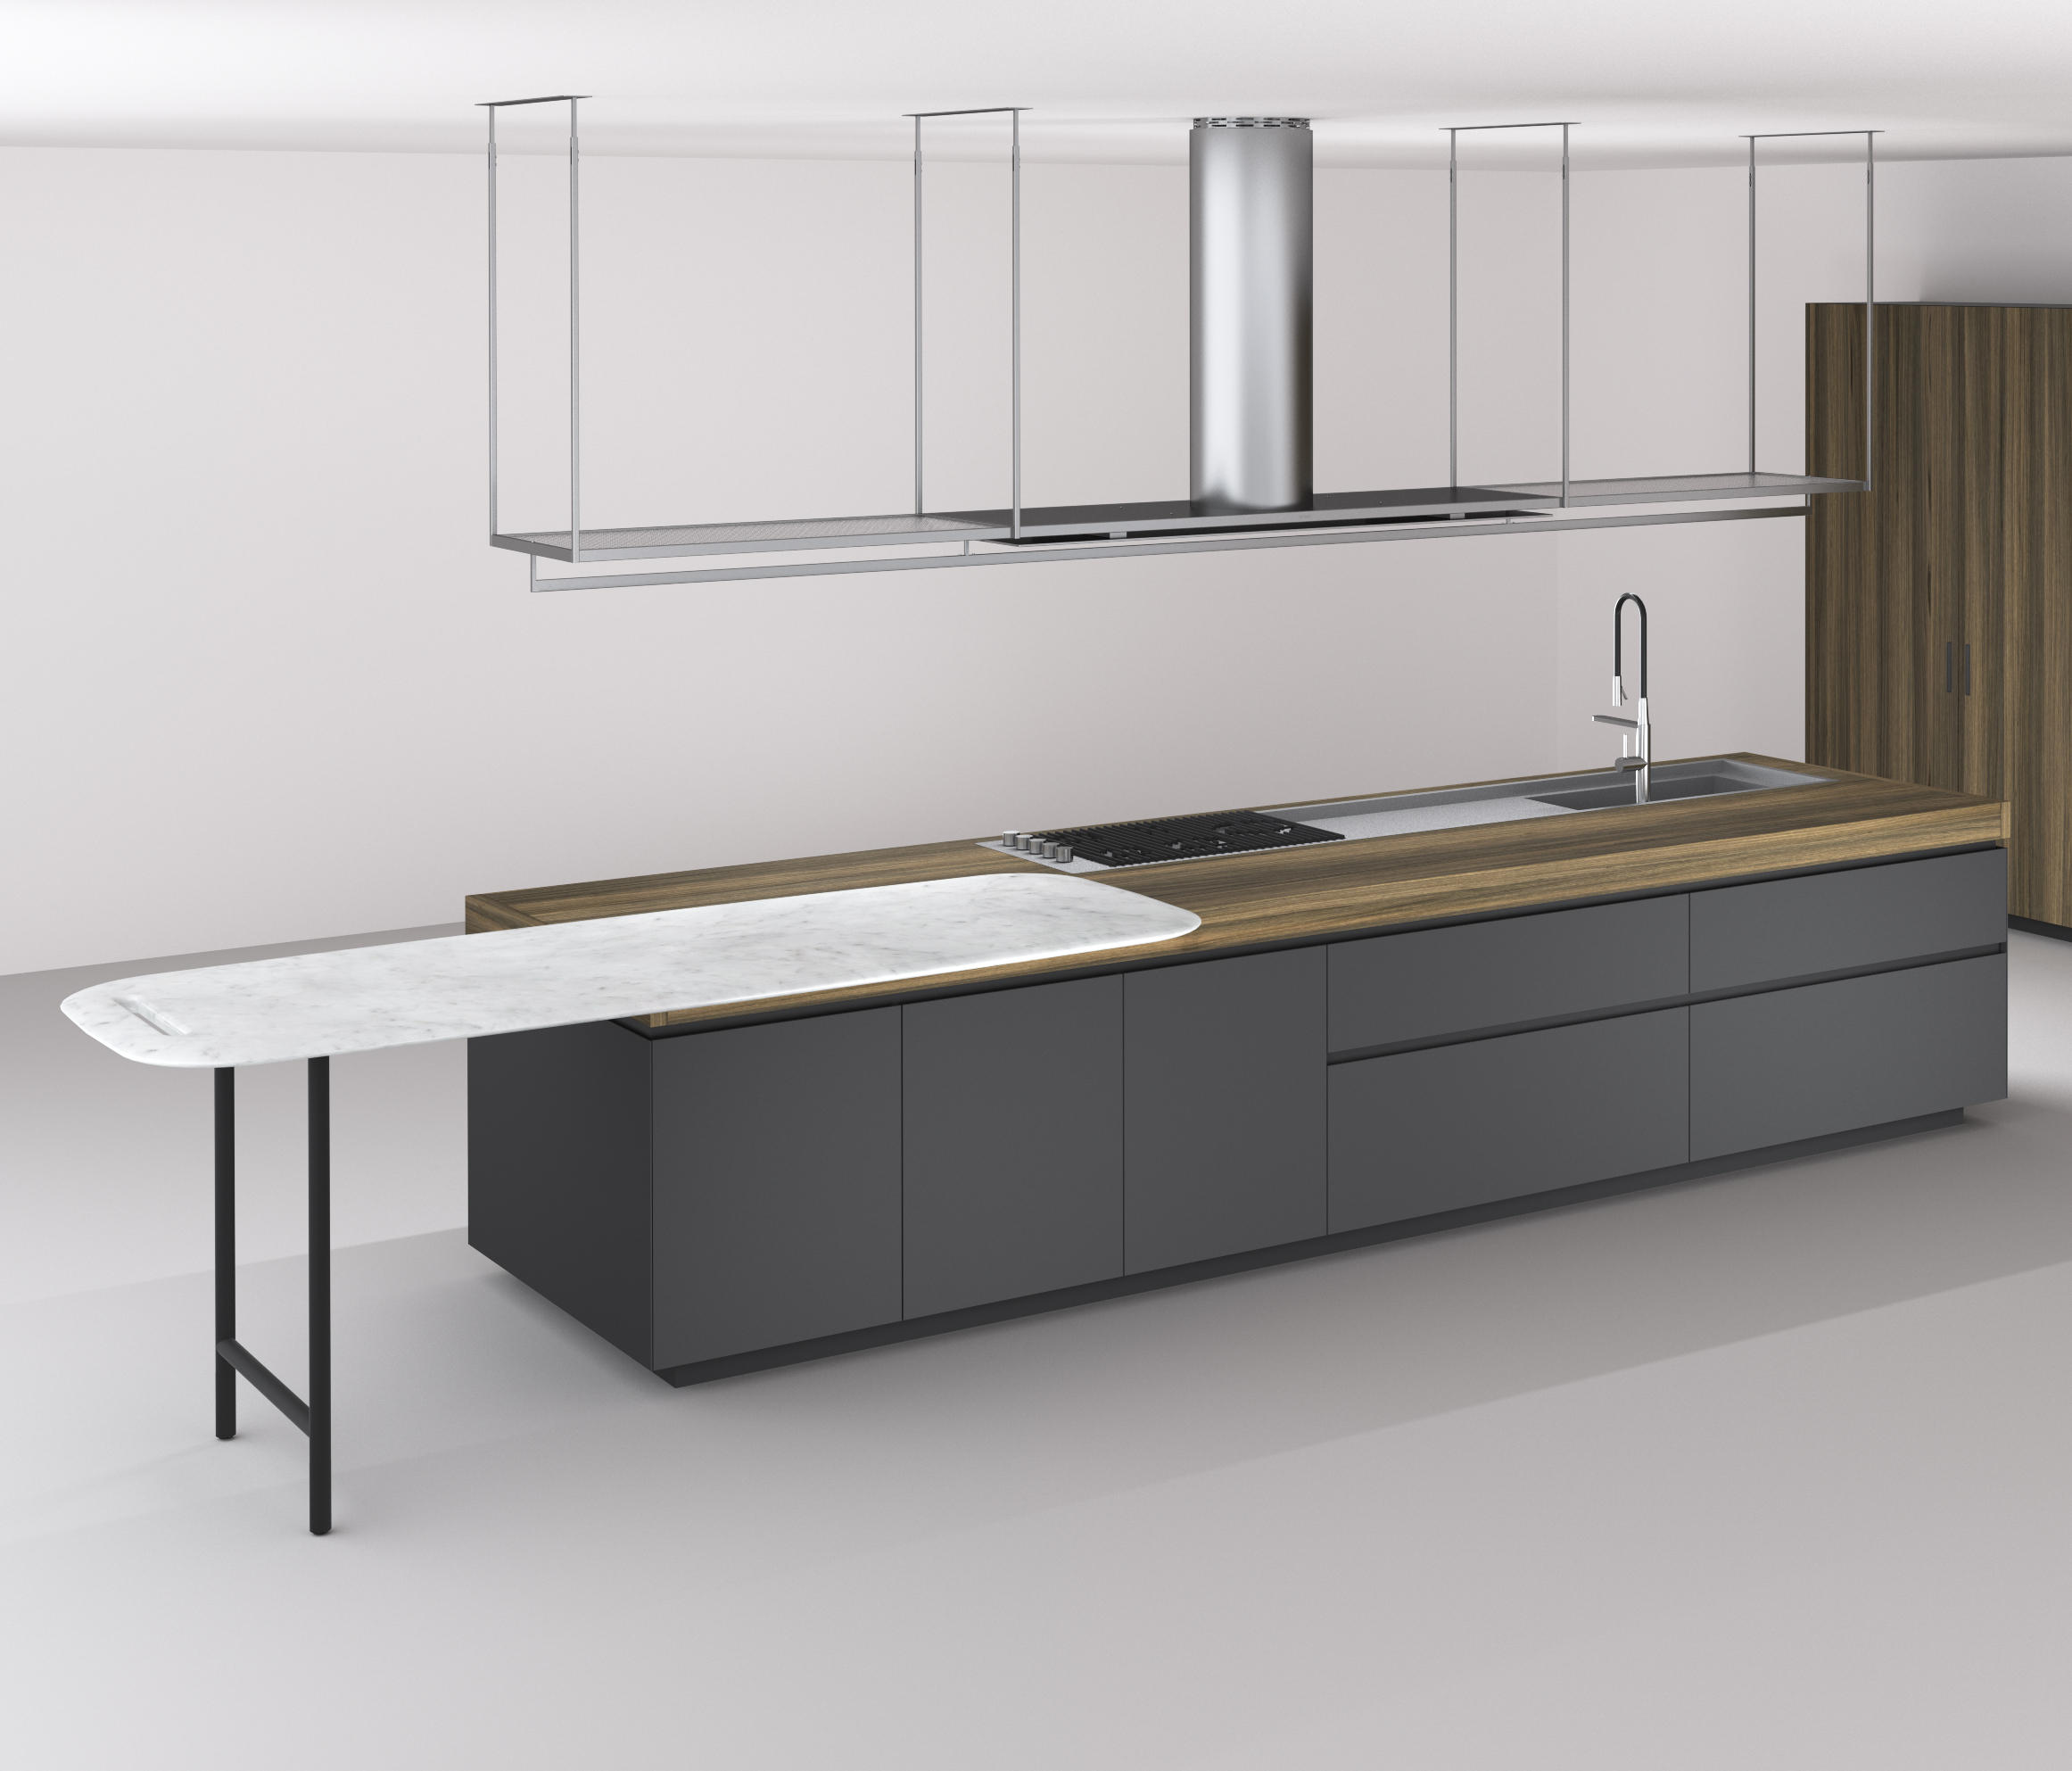 BOFFI_CODE KITCHEN - Island kitchens from Boffi | Architonic